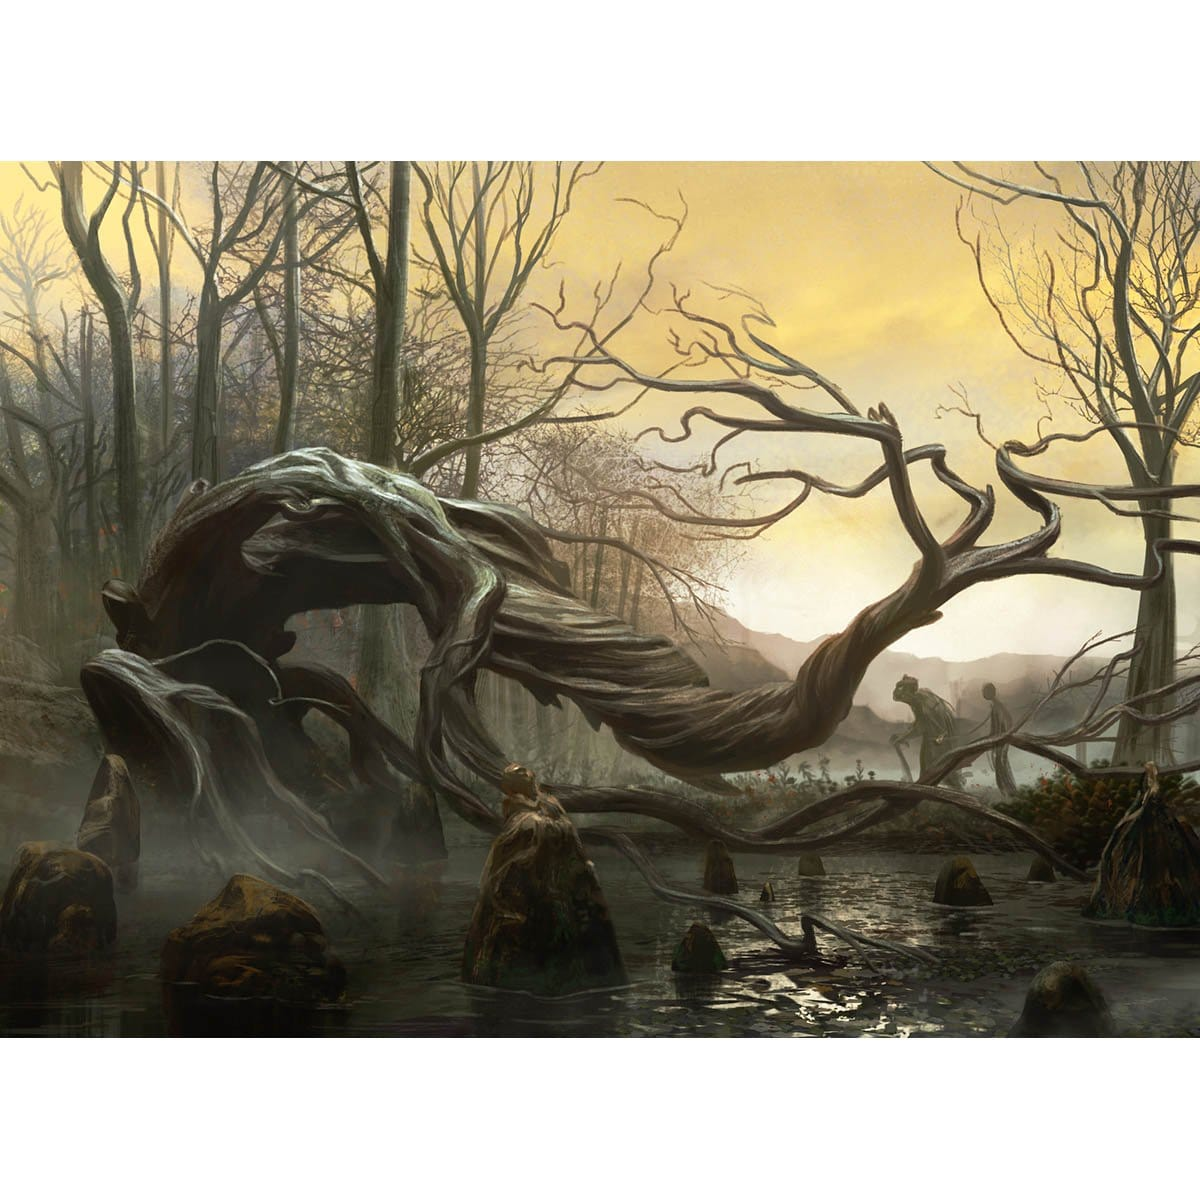 Swamp (Magic 2013) Print - Print - Original Magic Art - Accessories for Magic the Gathering and other card games